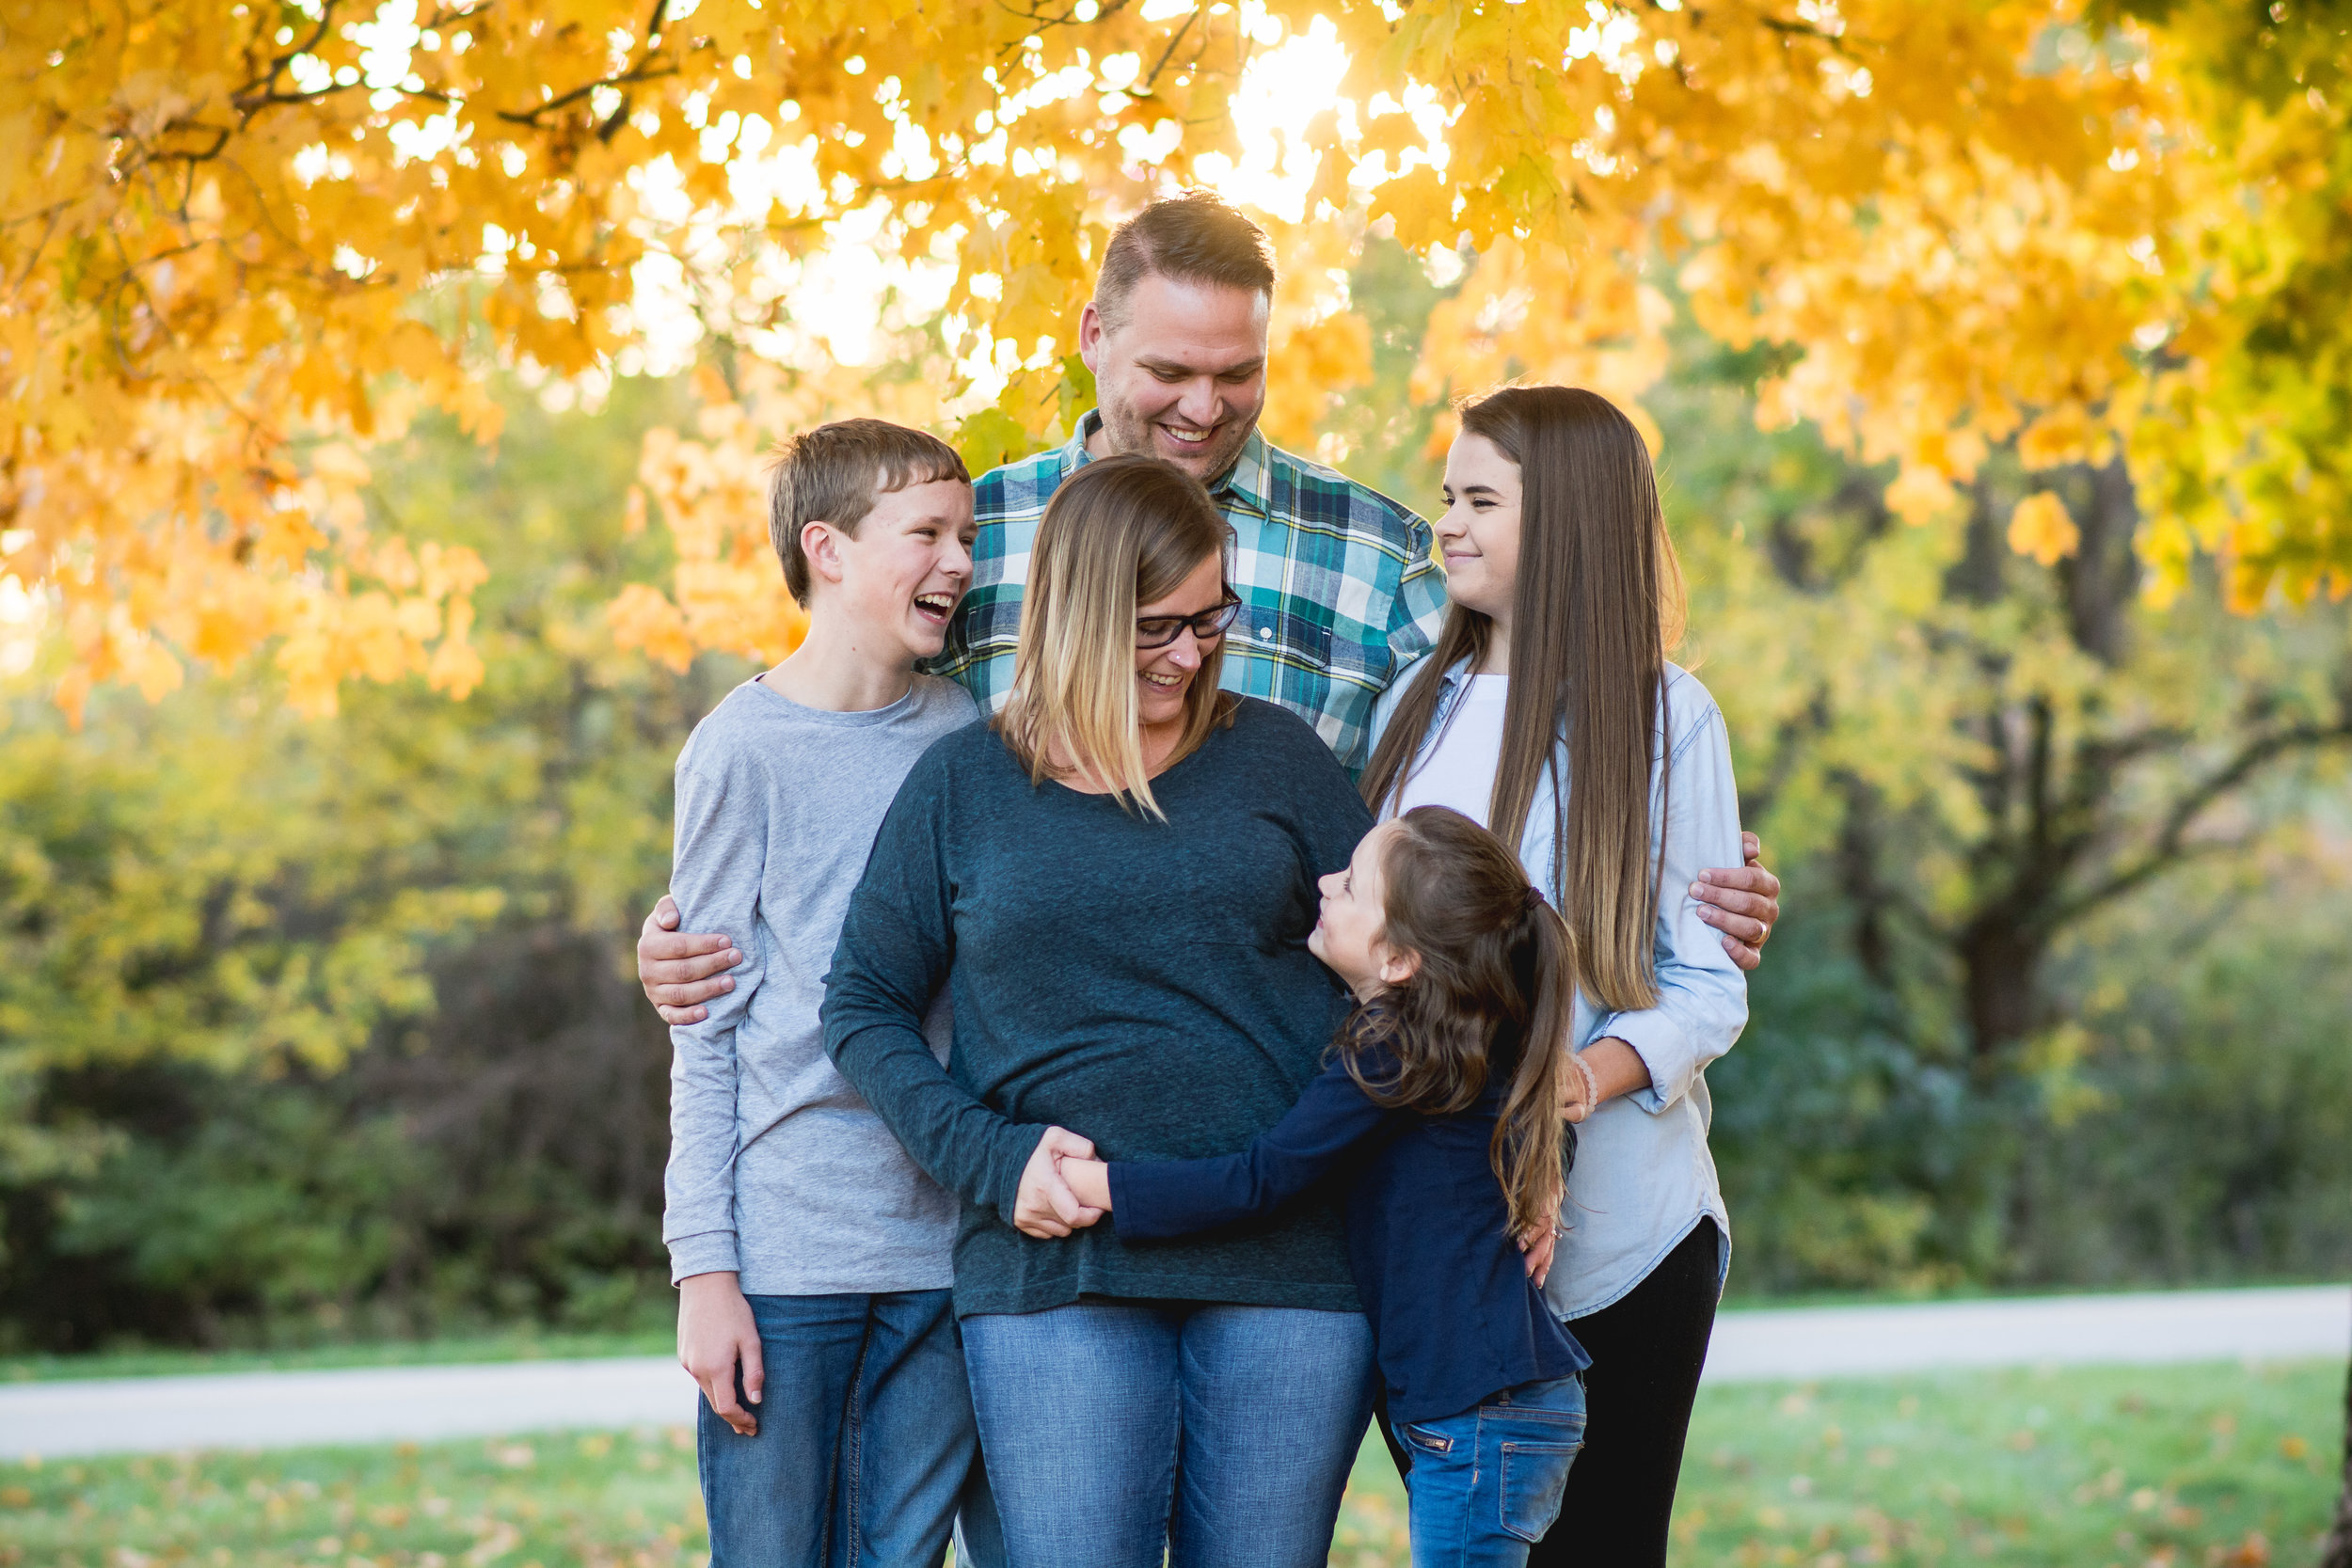 Springfield Ohio Family Photographer | Amanda Noel Photography | Lifestyle fall beach session